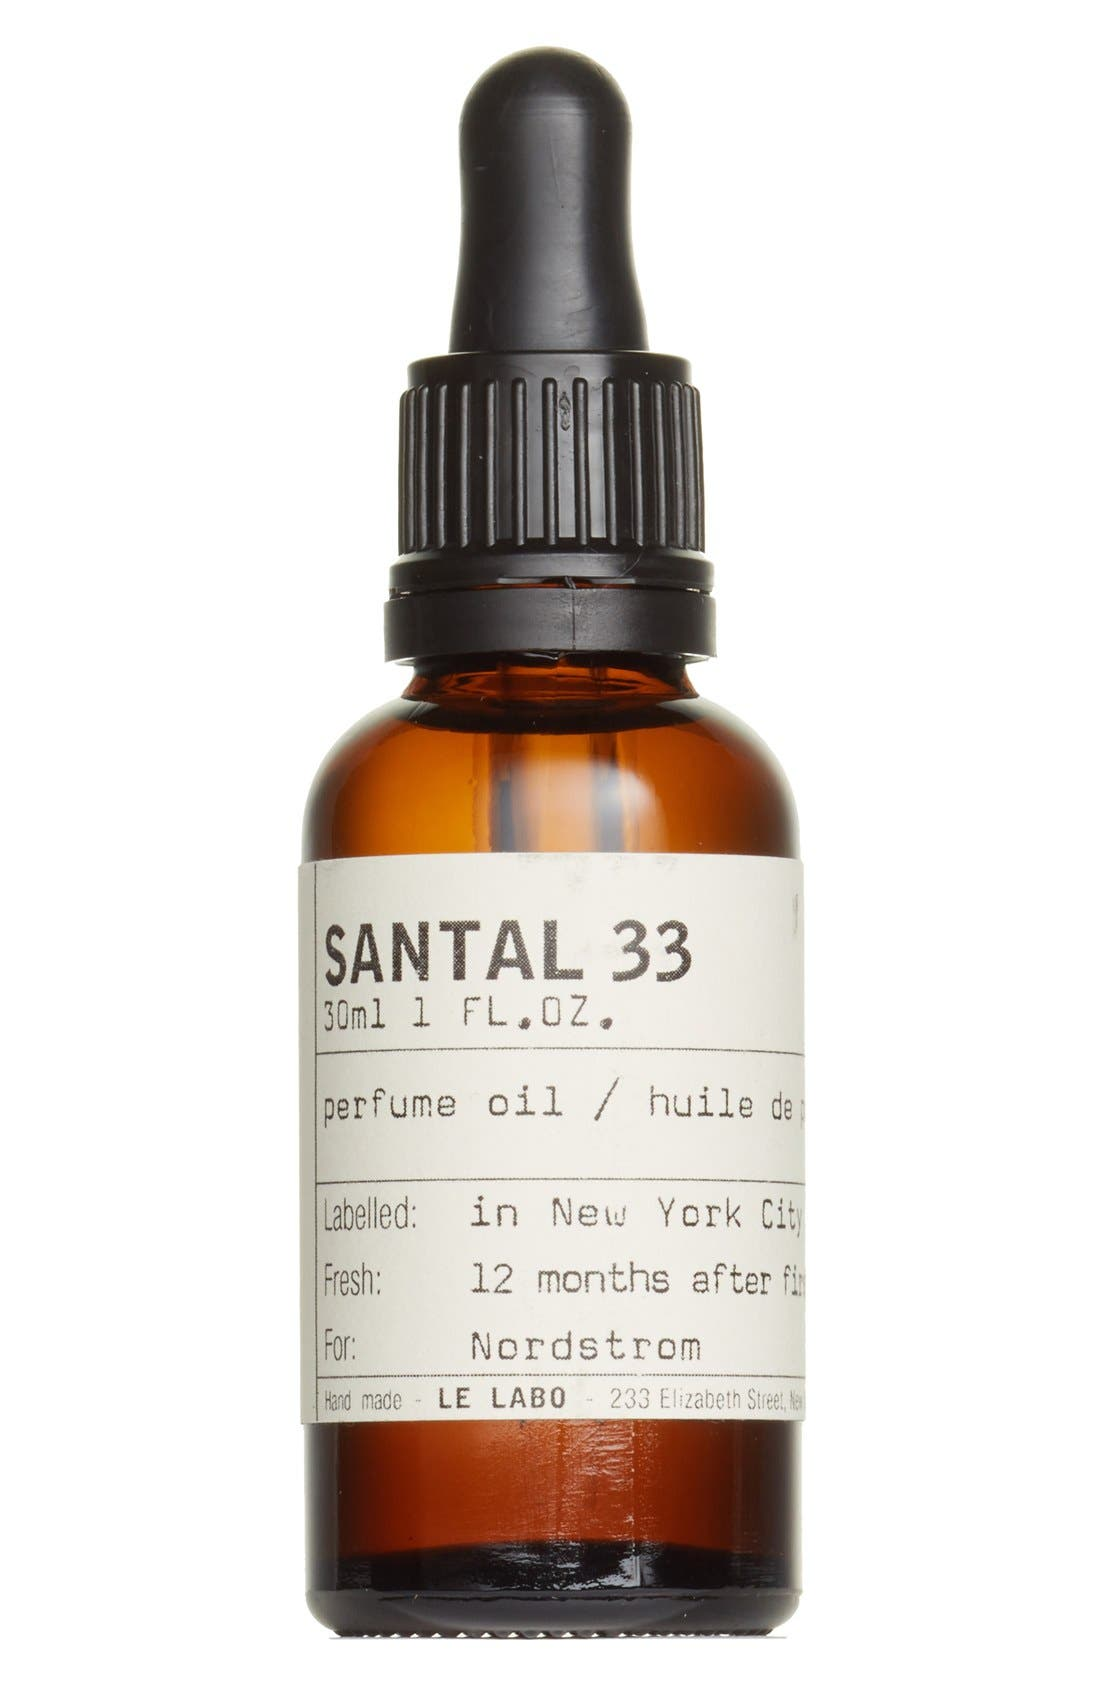 Le Labo 'Santal 33' Perfume Oil